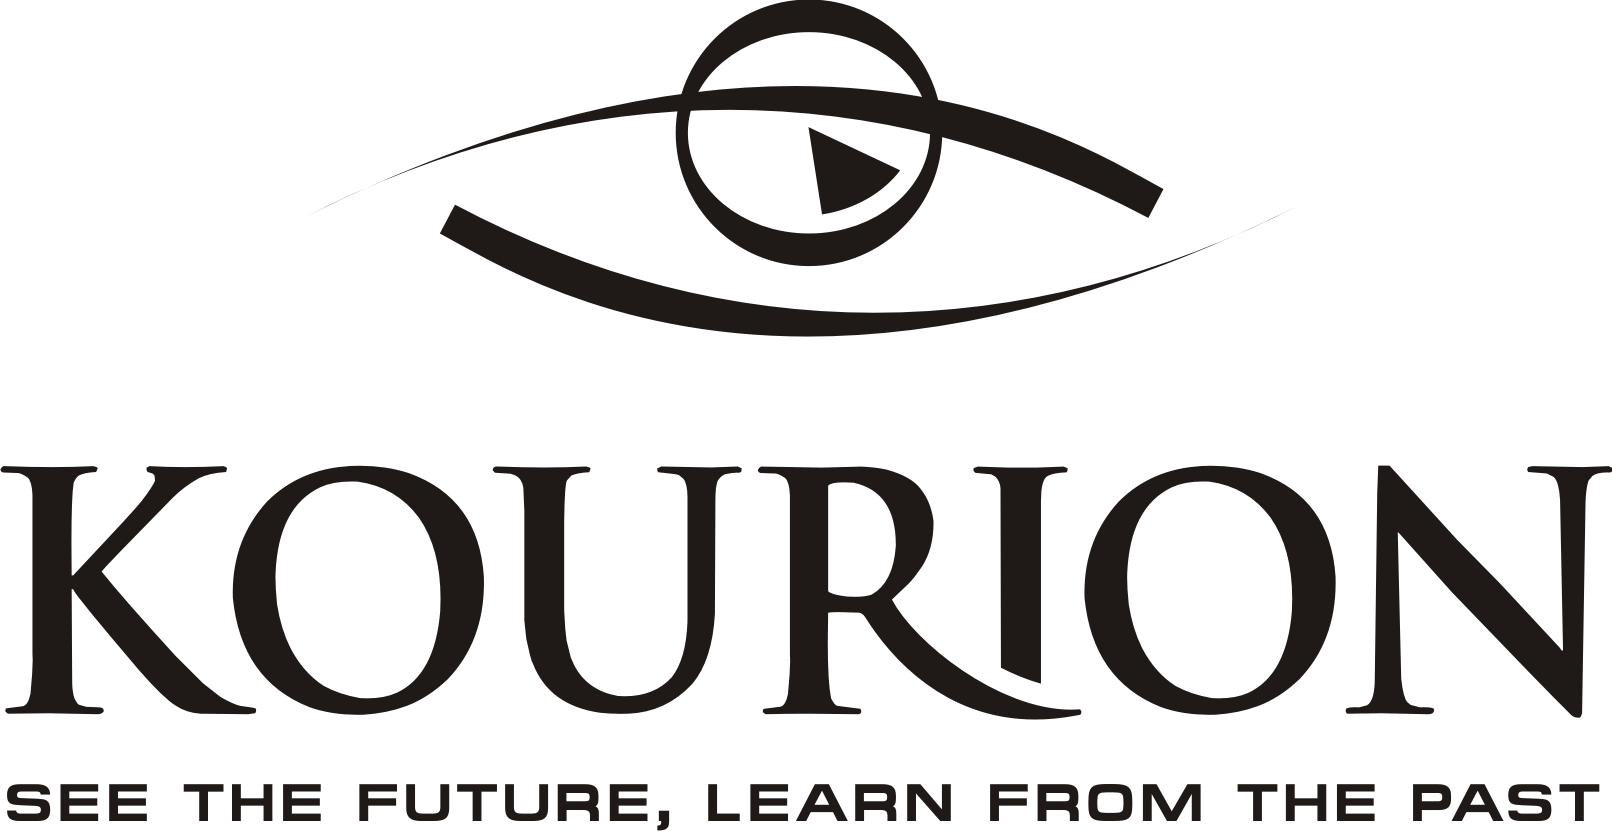 Your new logo will launch this Medical Device Company specialized in Eye Surgery.